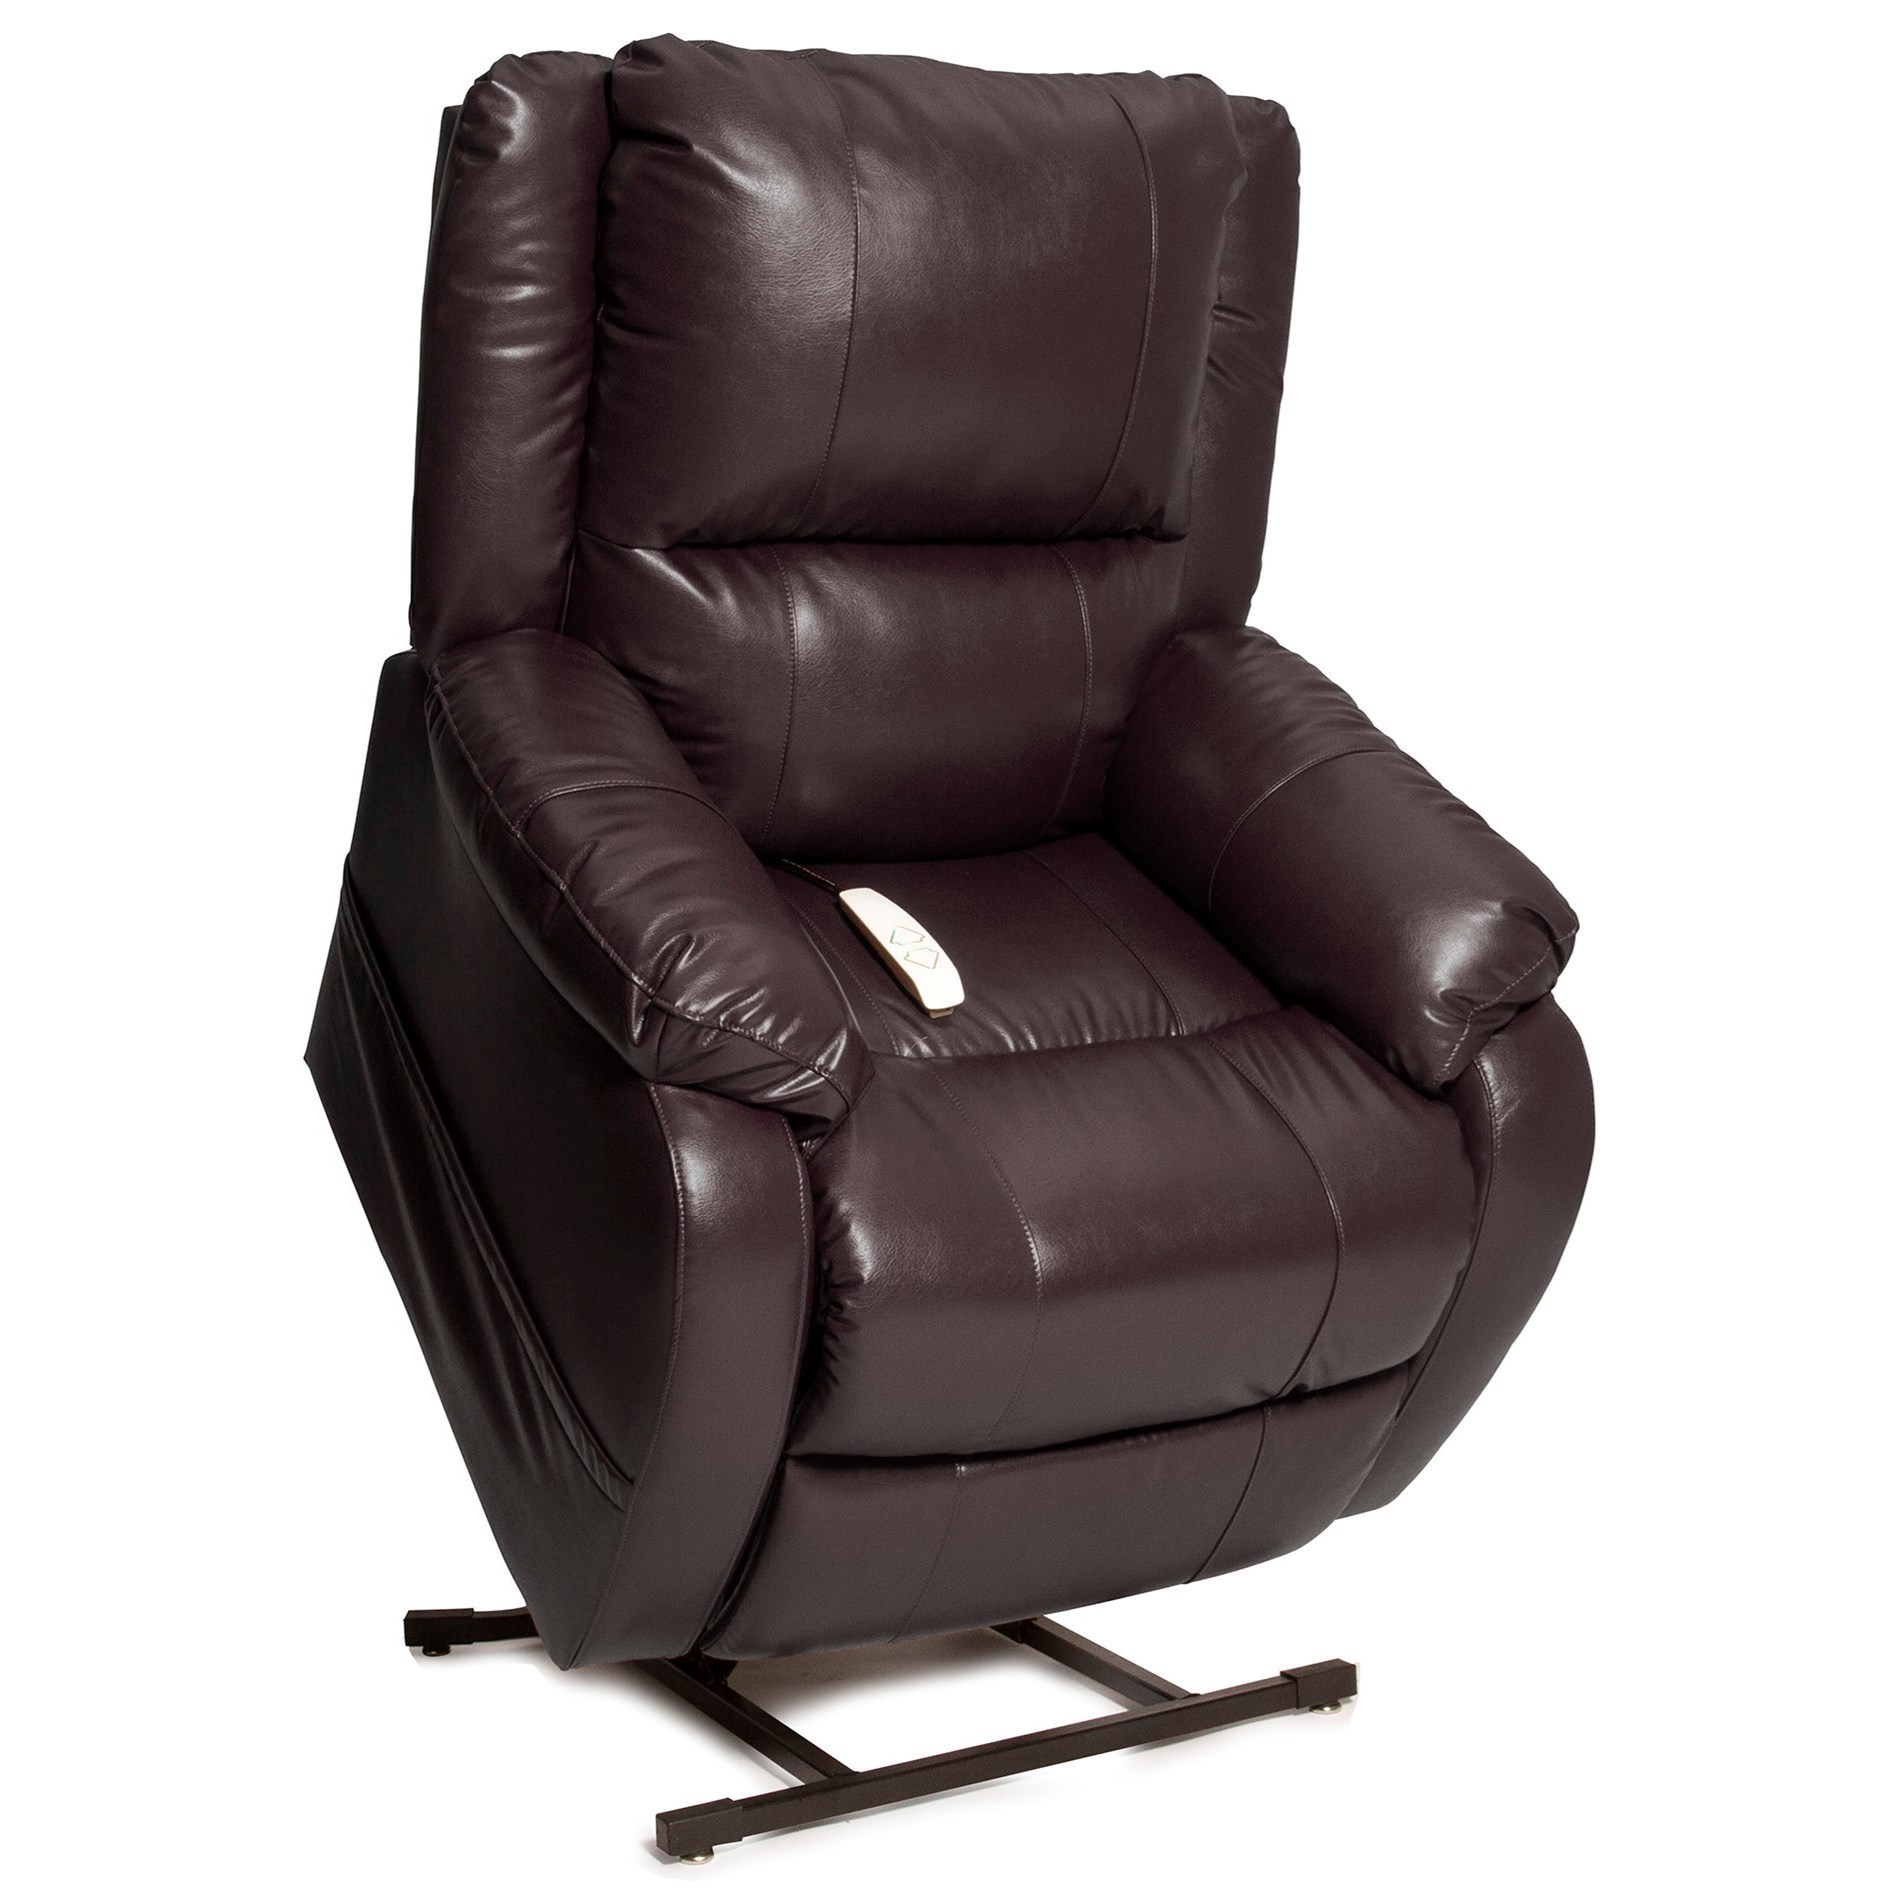 Windermere Motion Lift Chairs3 Position Reclining Lift Chair